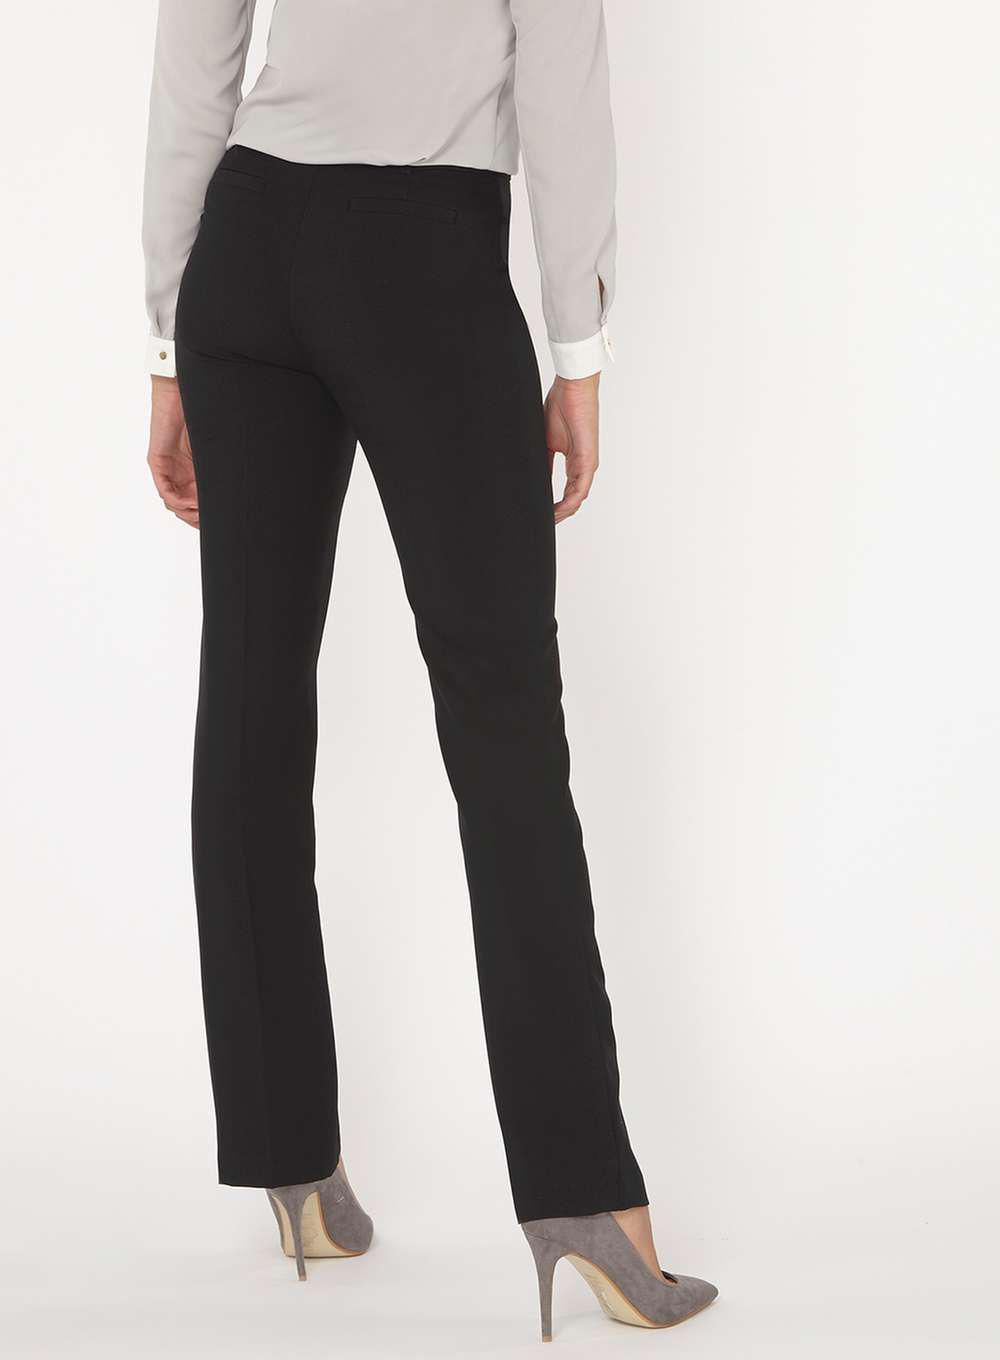 Free Shipping Pay With Paypal Dorothy Perkins Womens **Tall Velvet Slim Suit Trousers- Cheap Sale Amazon YaNh7y